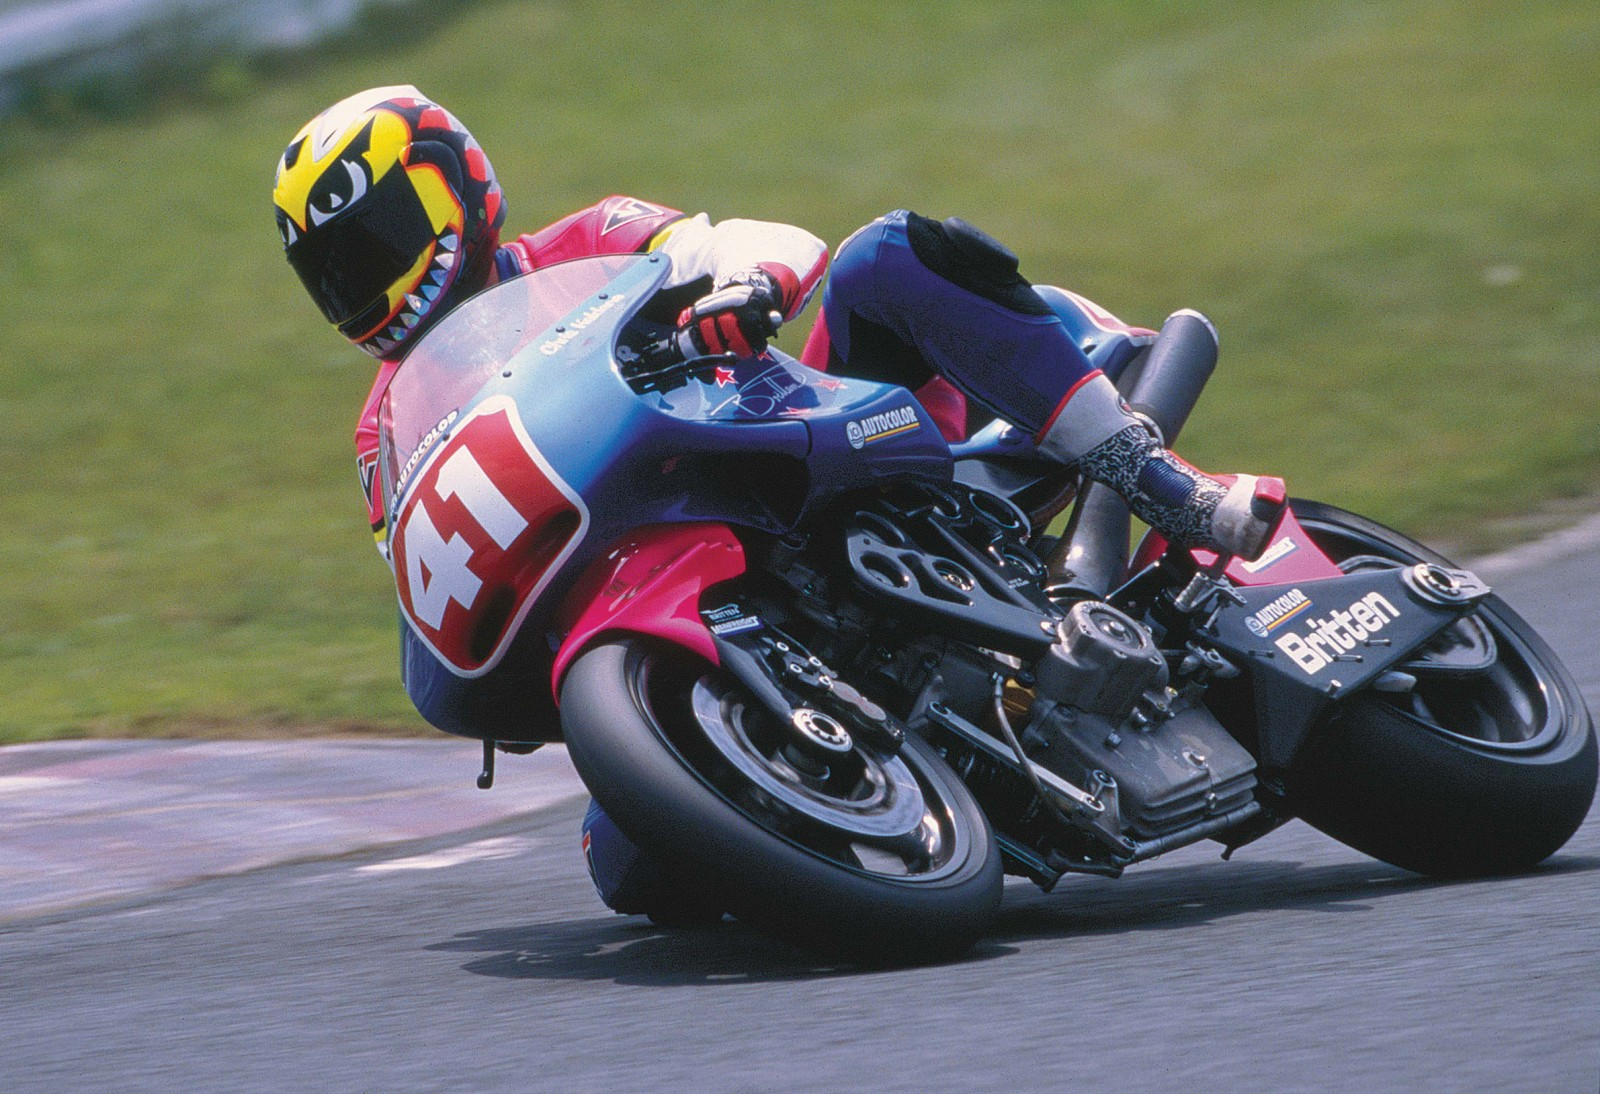 Britten motorcycles did well in a number of races throughout the world - including here at Tsukaba in 1998 several years after John's death.